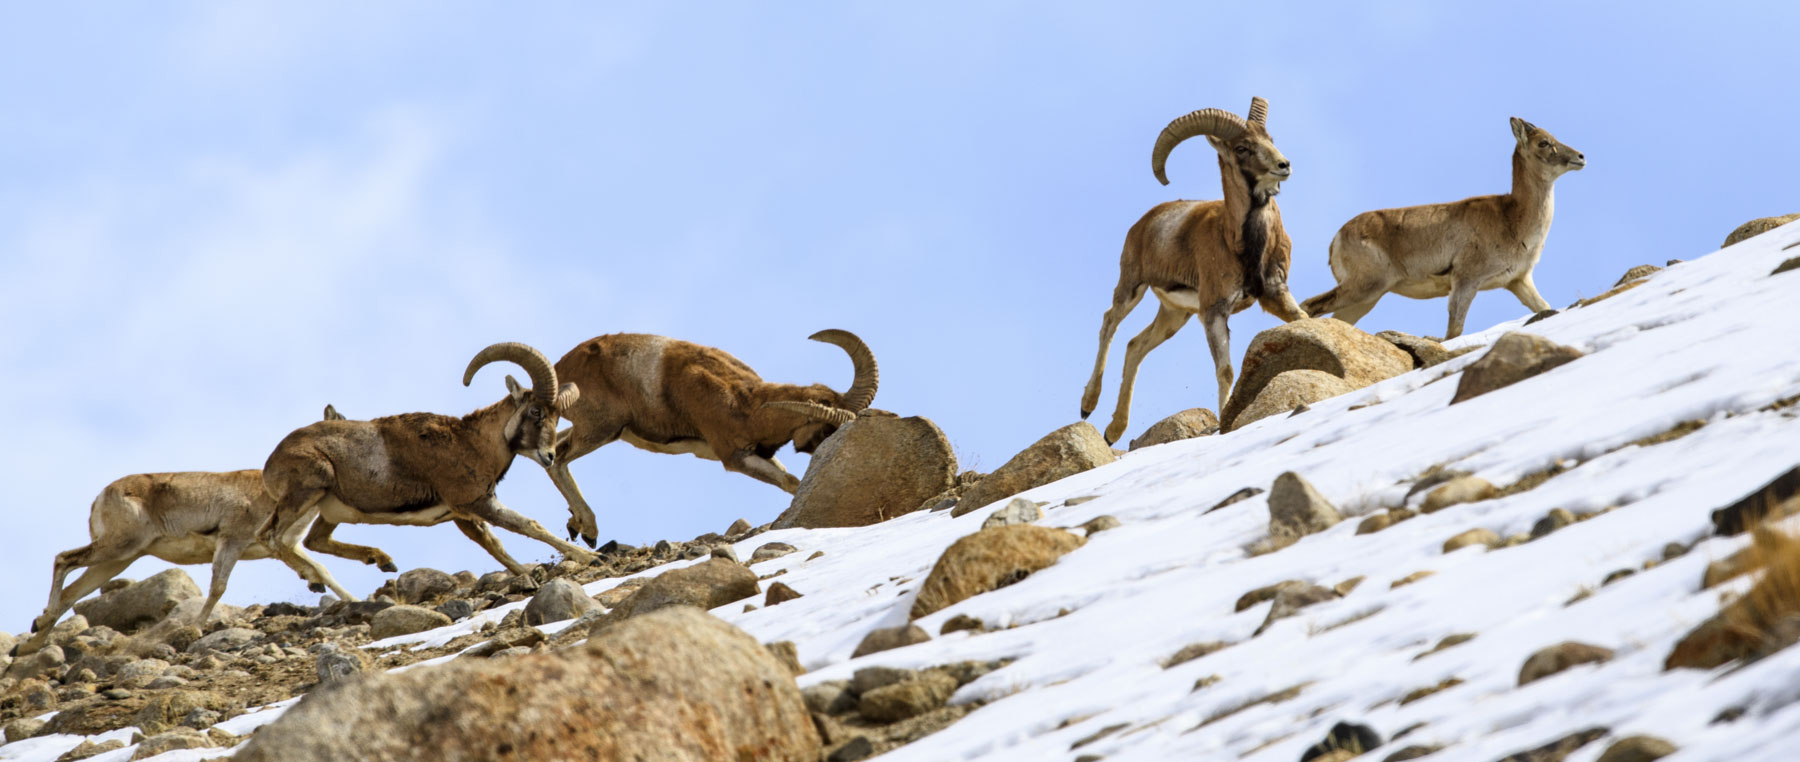 The Ladakh urial or shapu as it is locally known, prefers areas with relatively gentle slopes along river valleys, which are often close to human habitation. Photo: Nick Garbutt